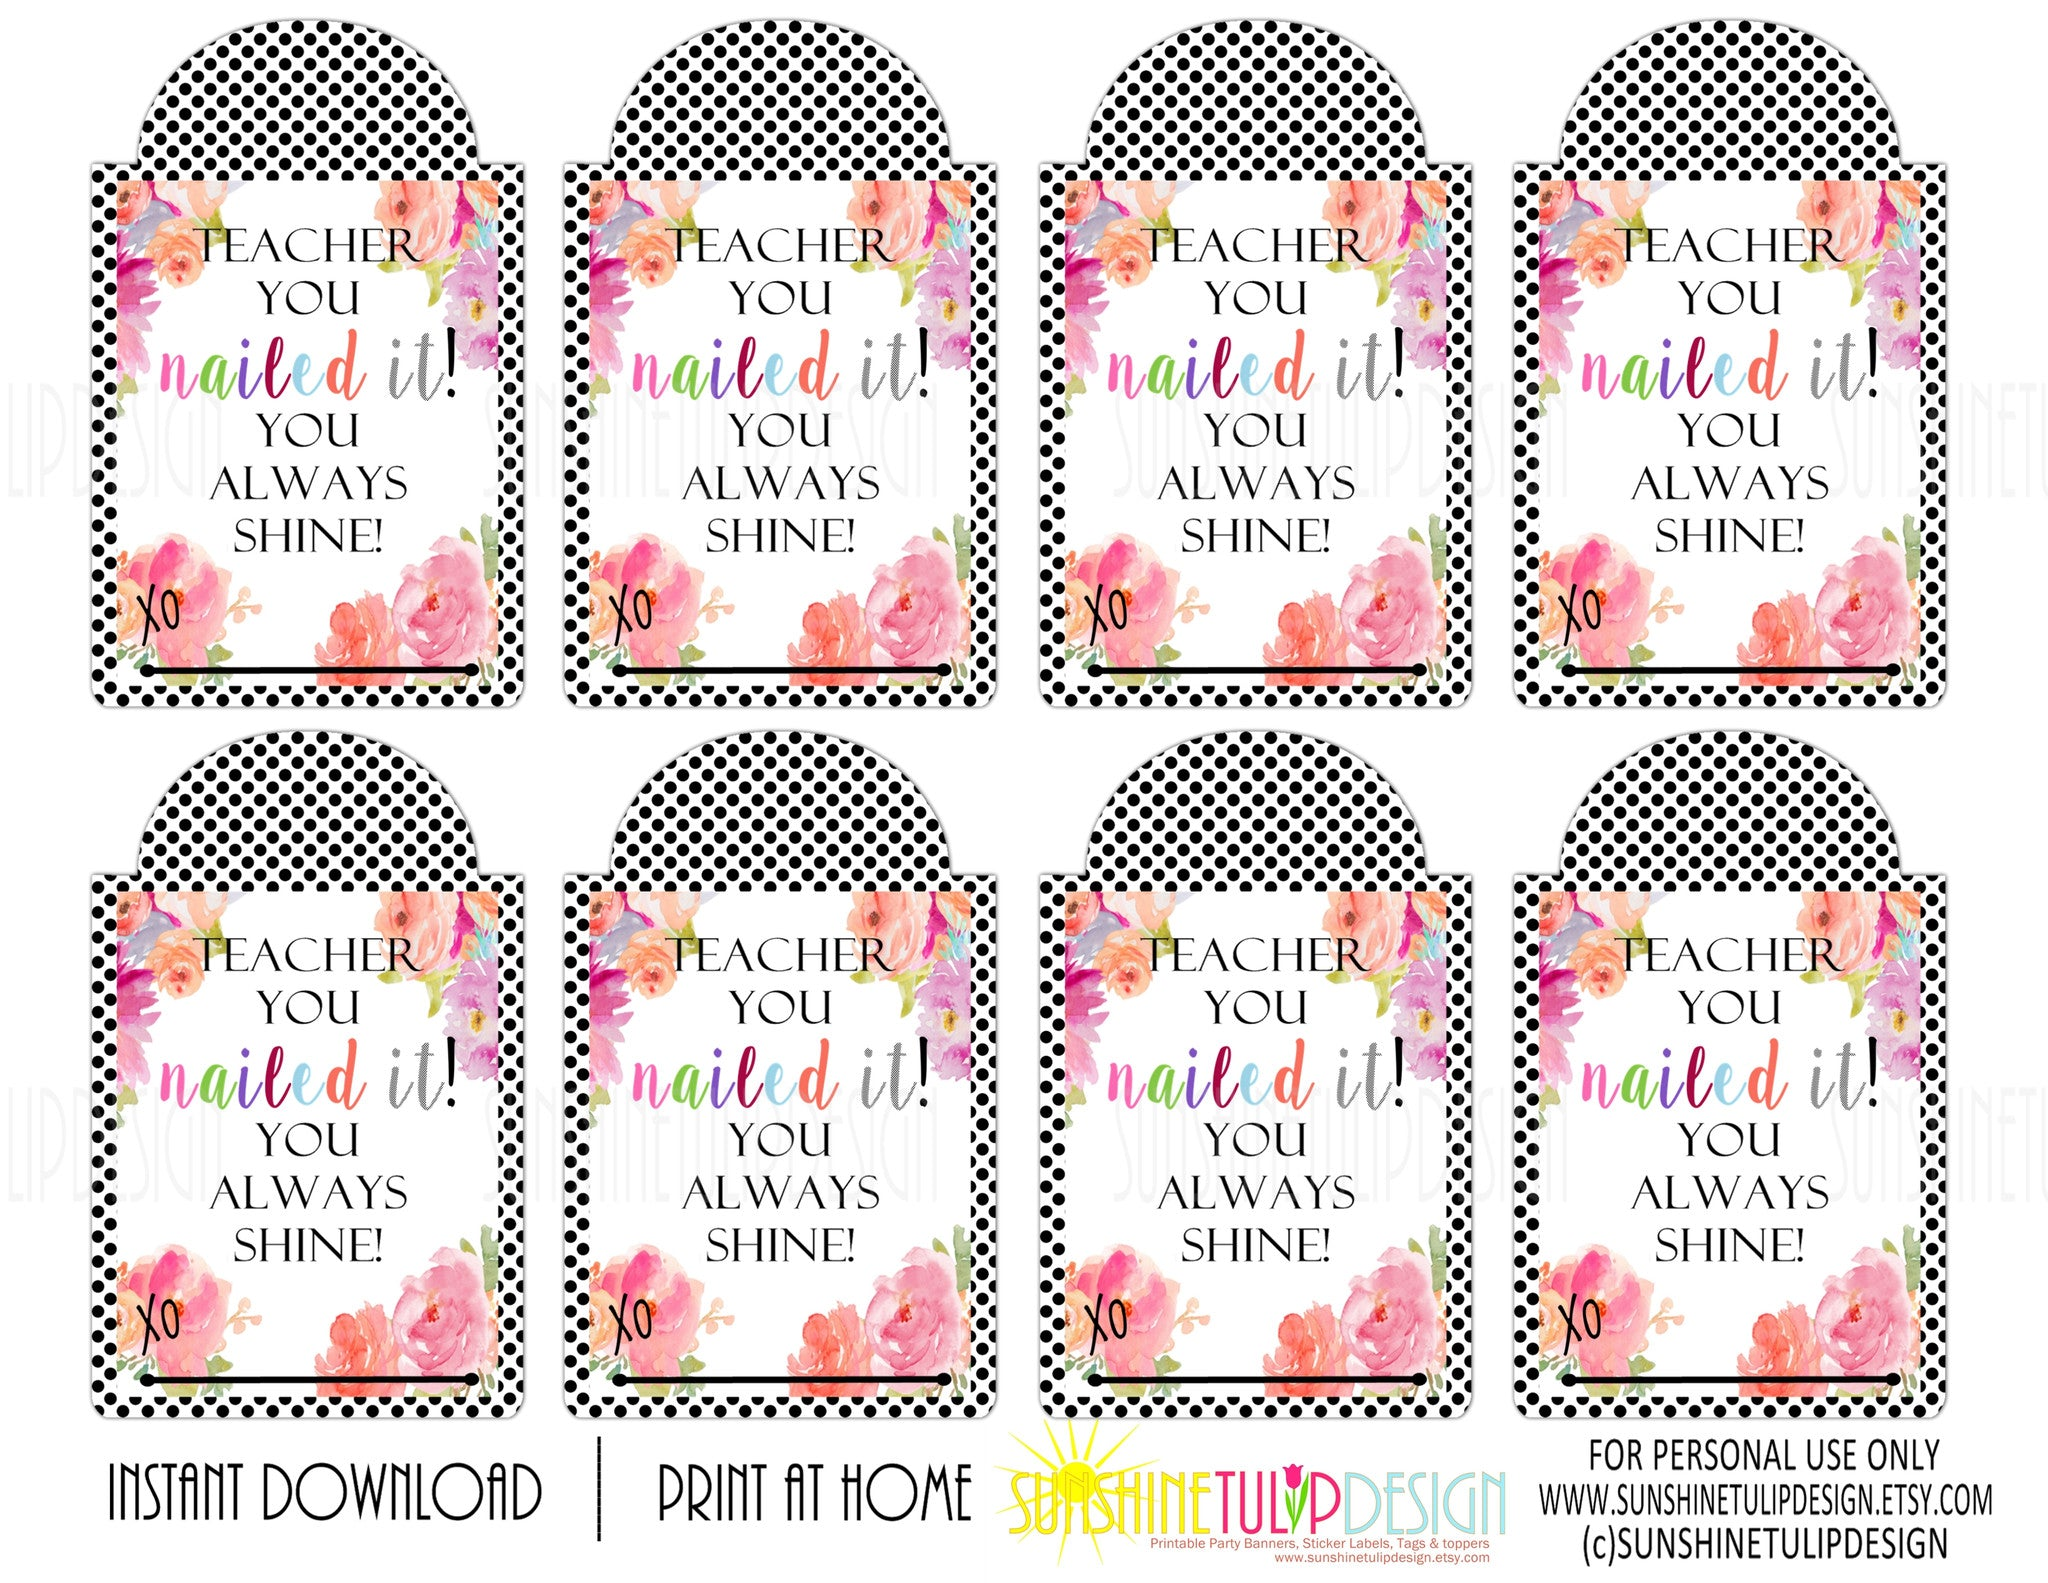 graphic relating to Cute Gift Tags Printable titled Printable Trainer Appreciation tags, Instructor Your self Nailed it, By yourself normally Glow Reward Tags through SUNSHINETULIPDESIGN